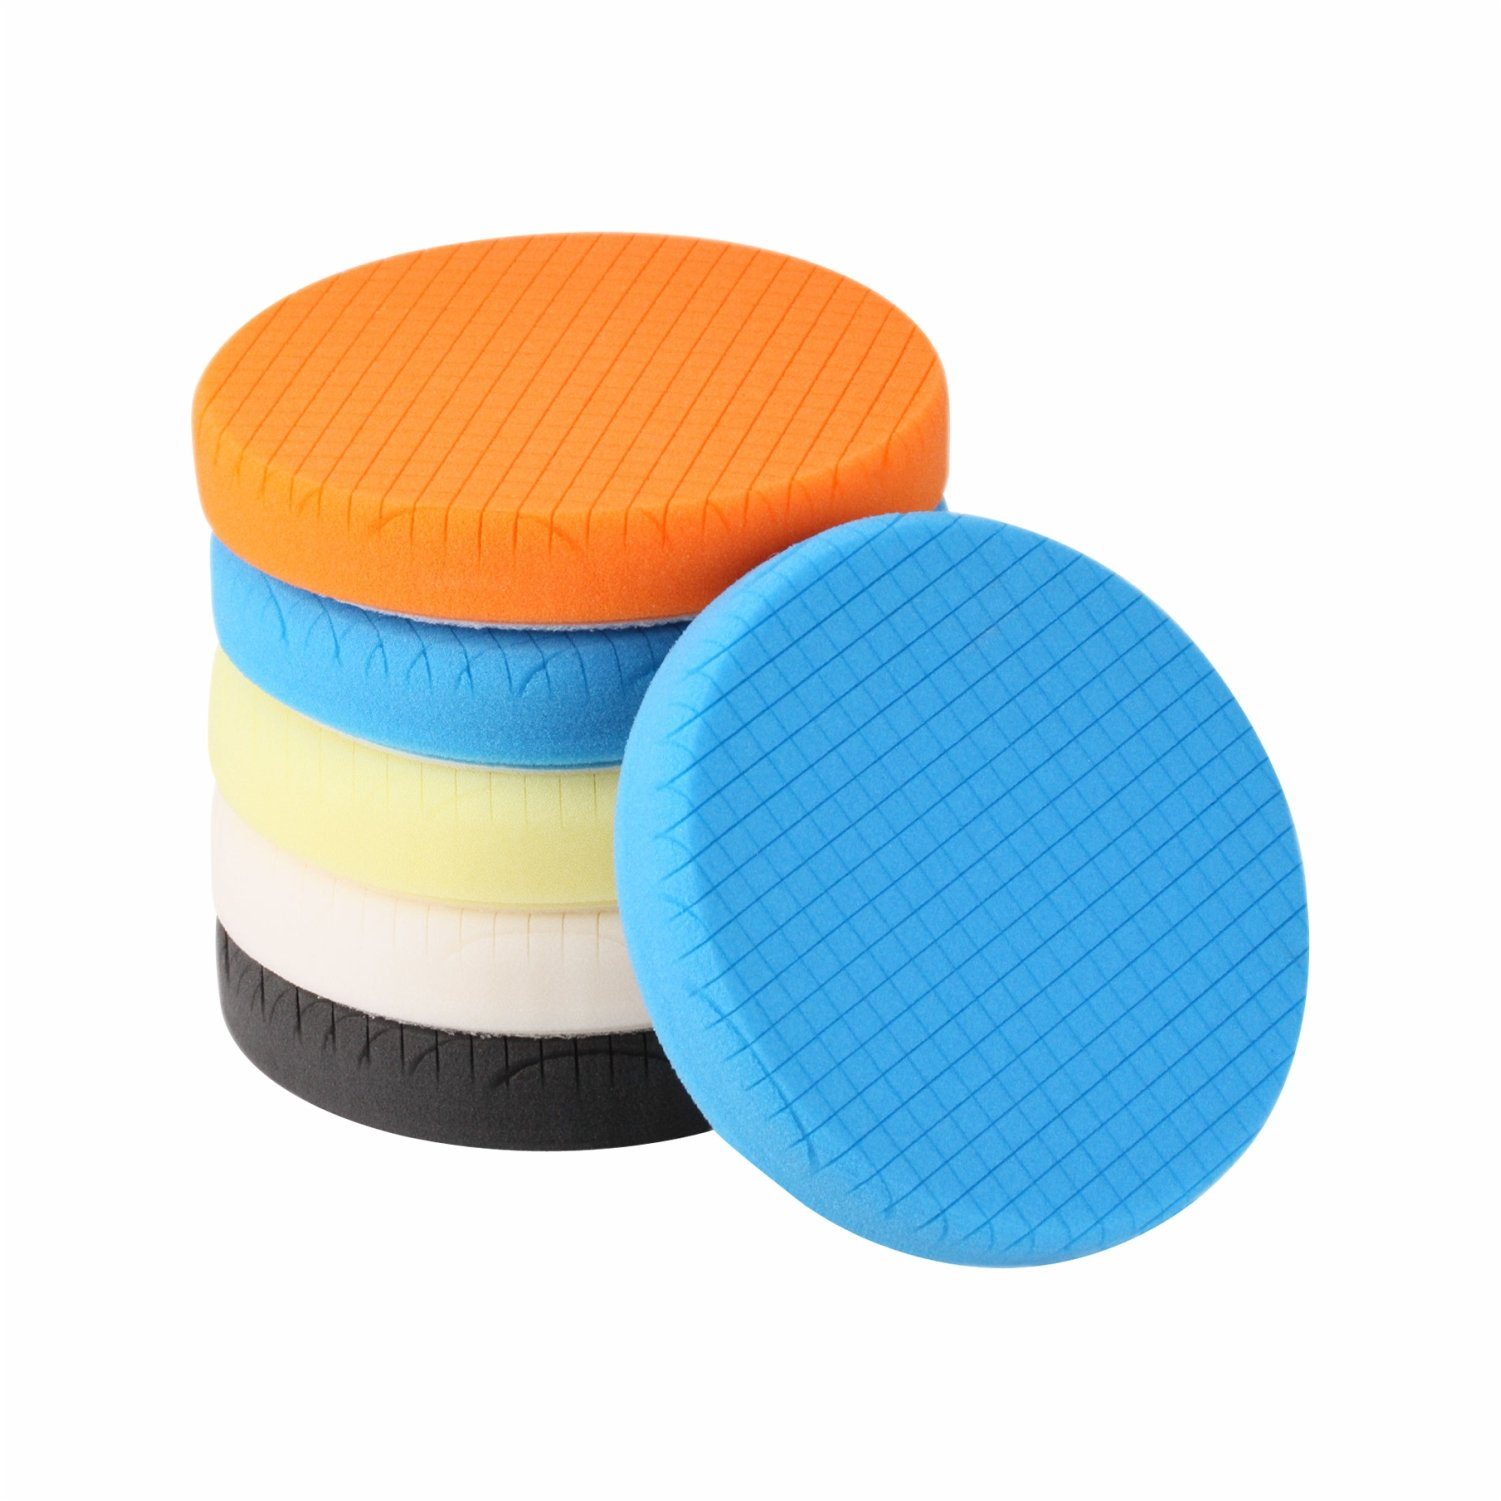 SPTA 5Pcs 7''/180mm Compound Buffing Sponge Pads Polishing Pads Kit Buffing Pad For Car Buffer Polisher Sanding,Polishing, Waxing